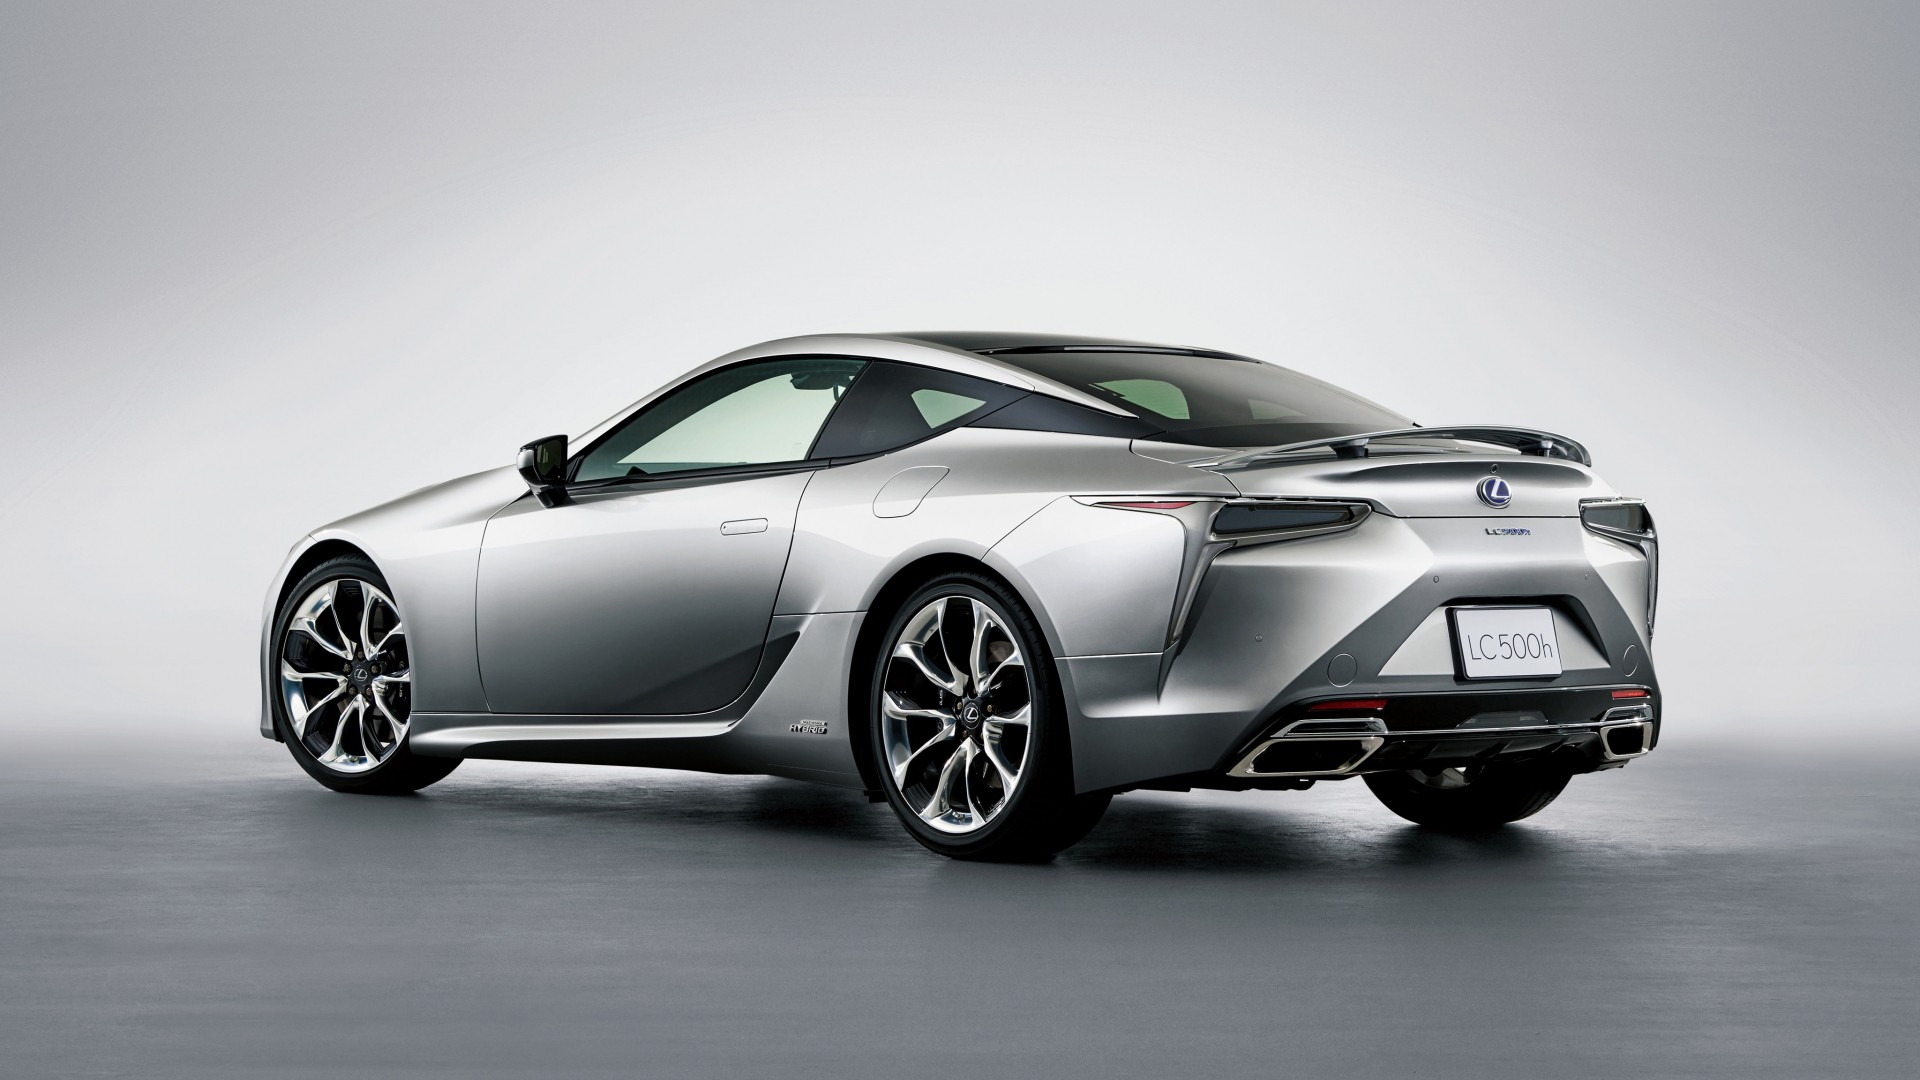 2018 lexus lc500h hybrid coupe 4k 2 wallpaper hd car wallpapers id 7638. Black Bedroom Furniture Sets. Home Design Ideas